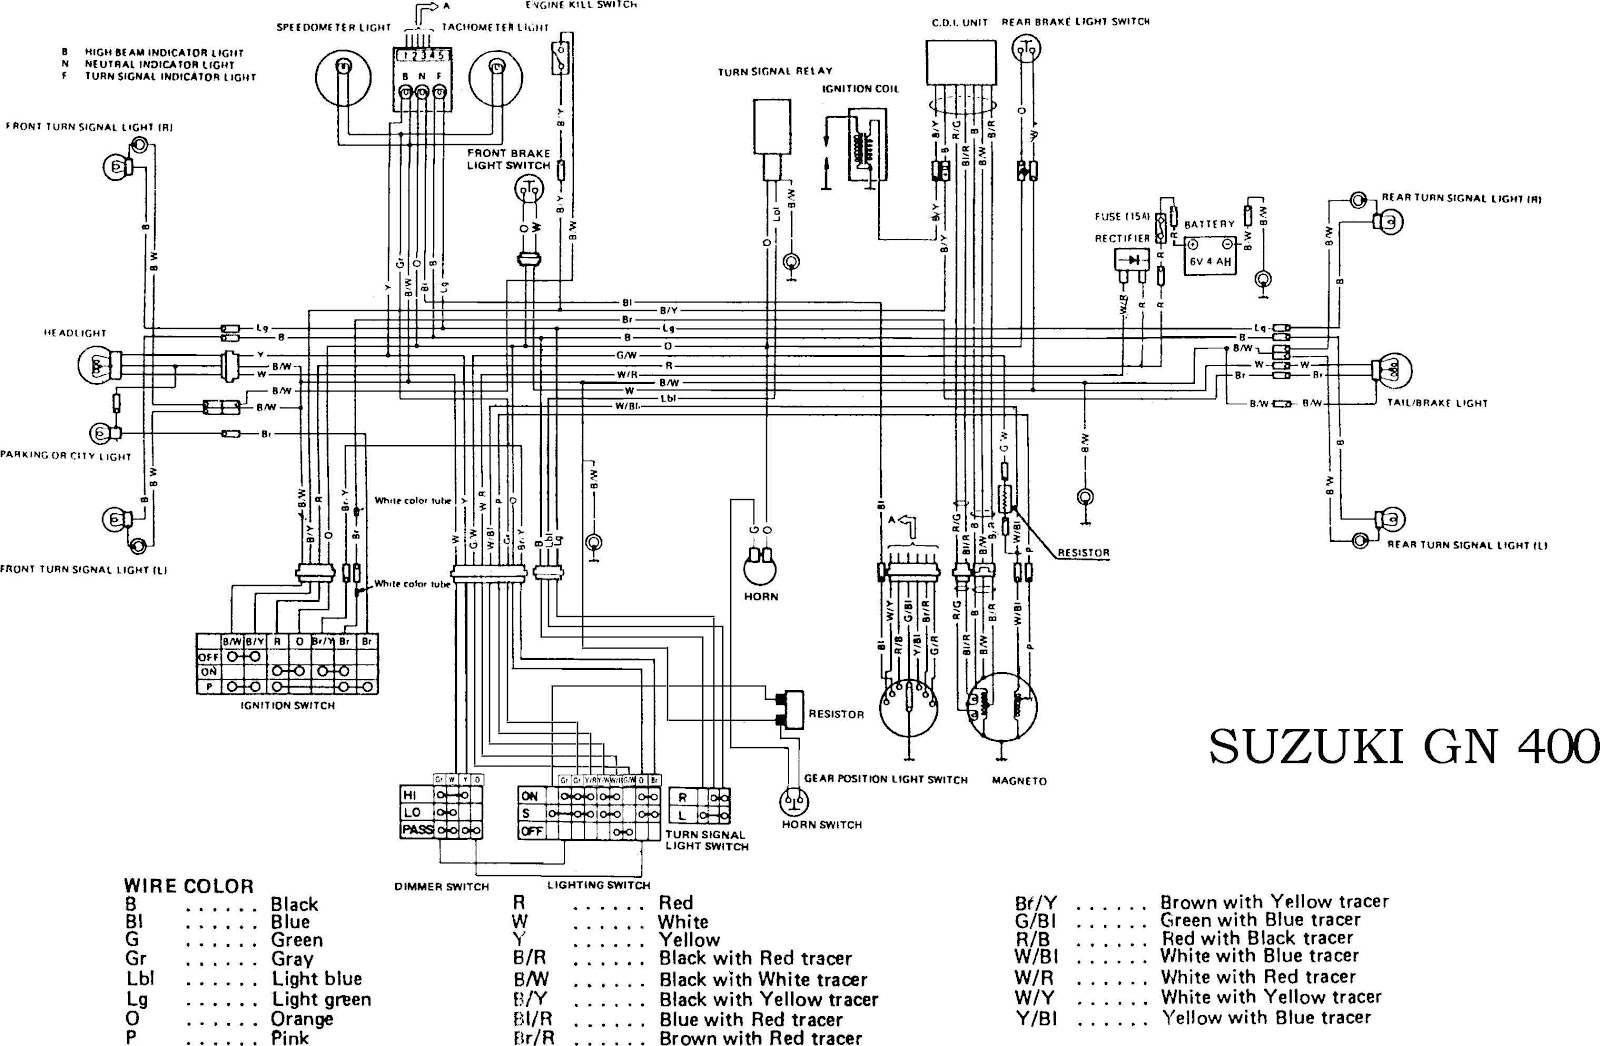 Zx 850 Grey Blue Wiring Diagram Rj6 Cbr600rr 05 Zx10r 2006 Gsxr 600 Electrical Wirdig 2005 Simple